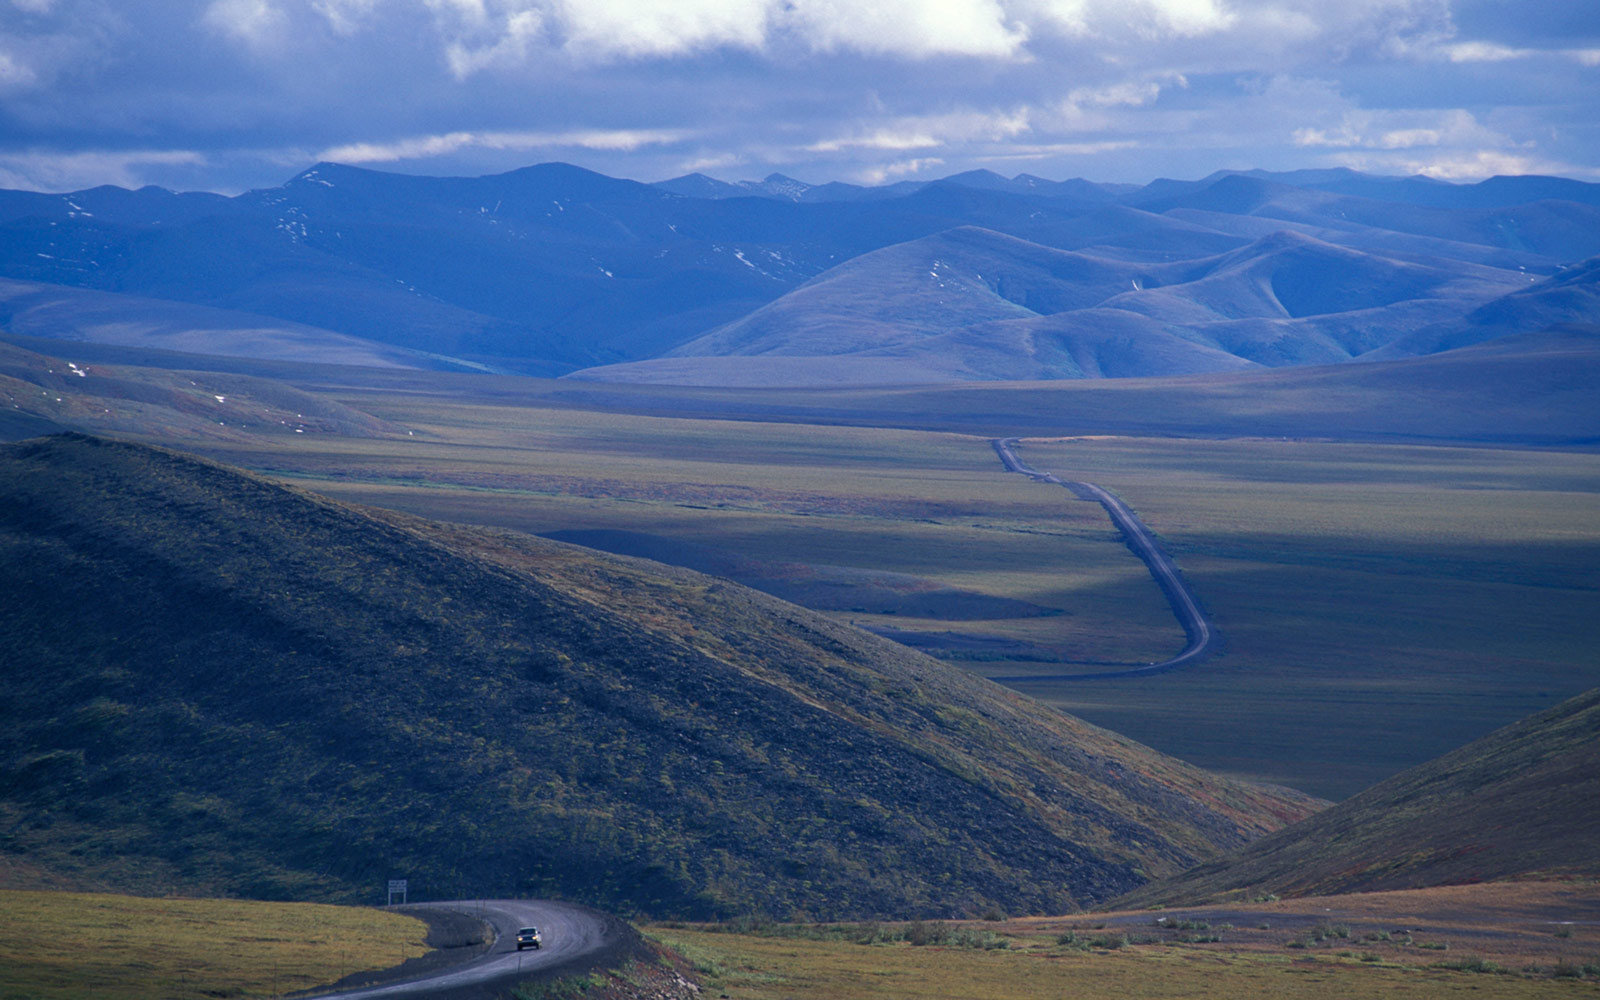 8. Continental Divide, Yukon Territory